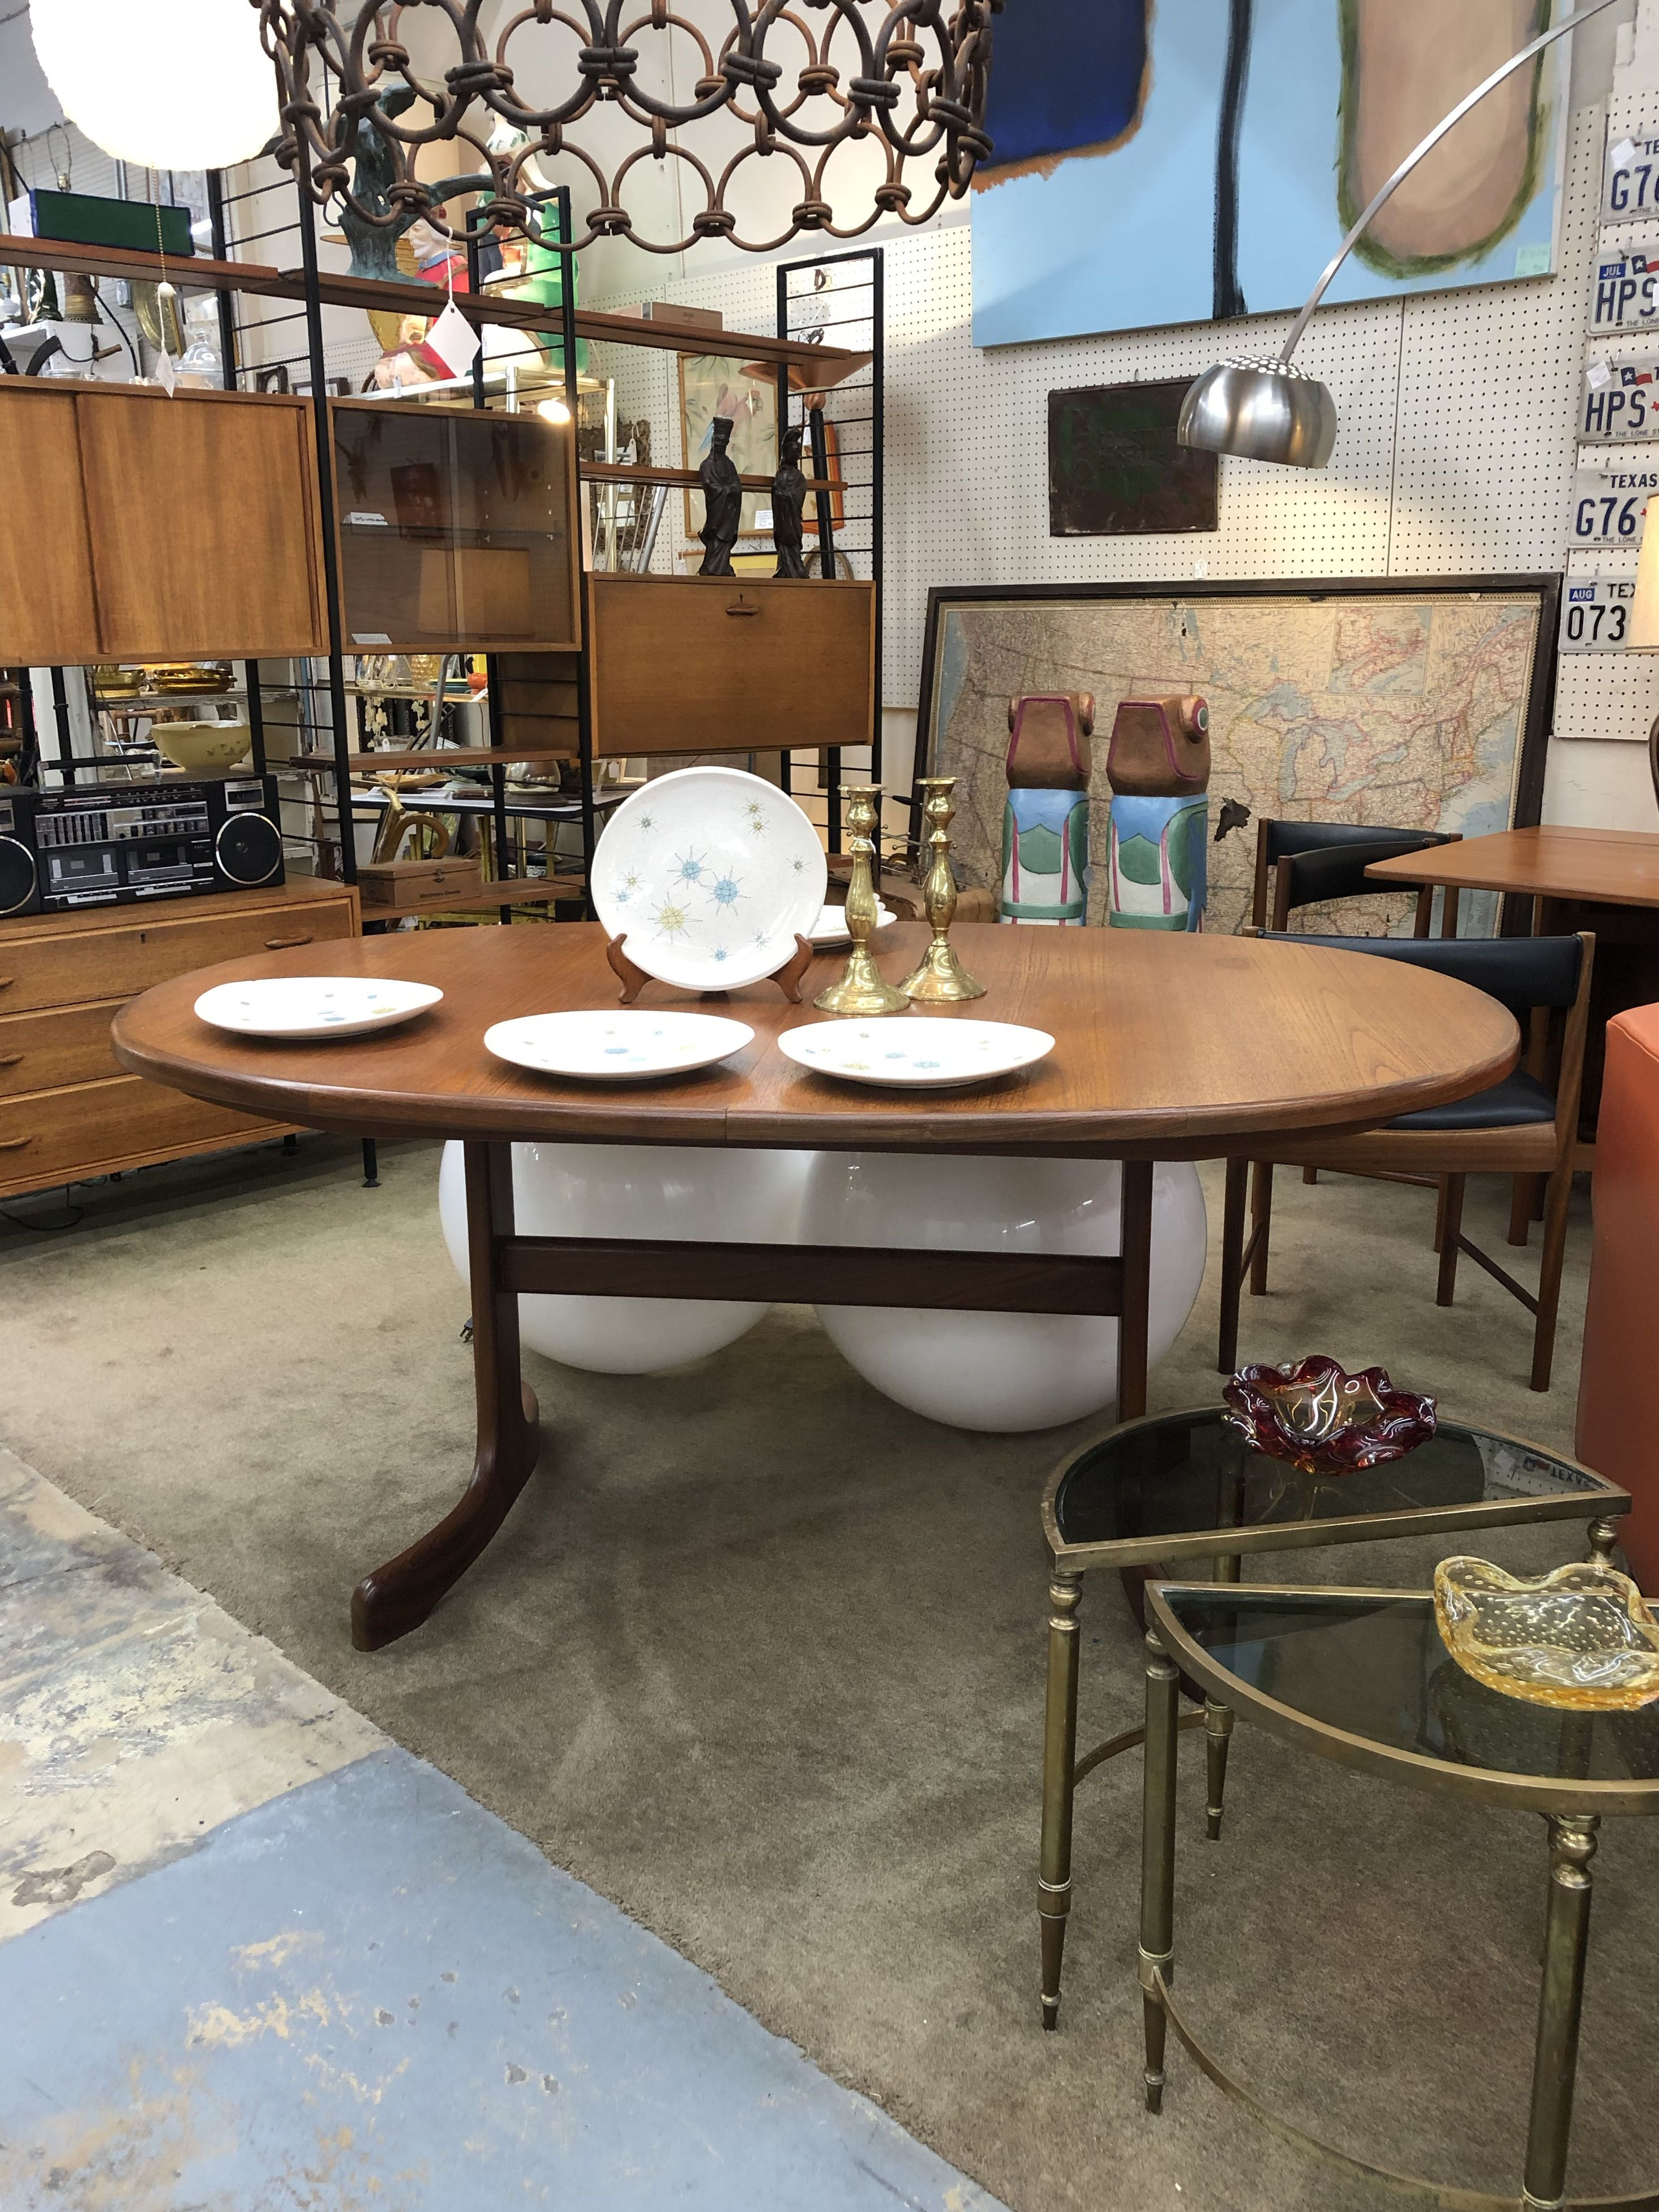 Teak Mid Century Dining Table With Pop Up Extension 80 Wide 859 Lula B S 1010 N Riverfr Mid Century Dining Table Mid Century Table Mid Century Furniture